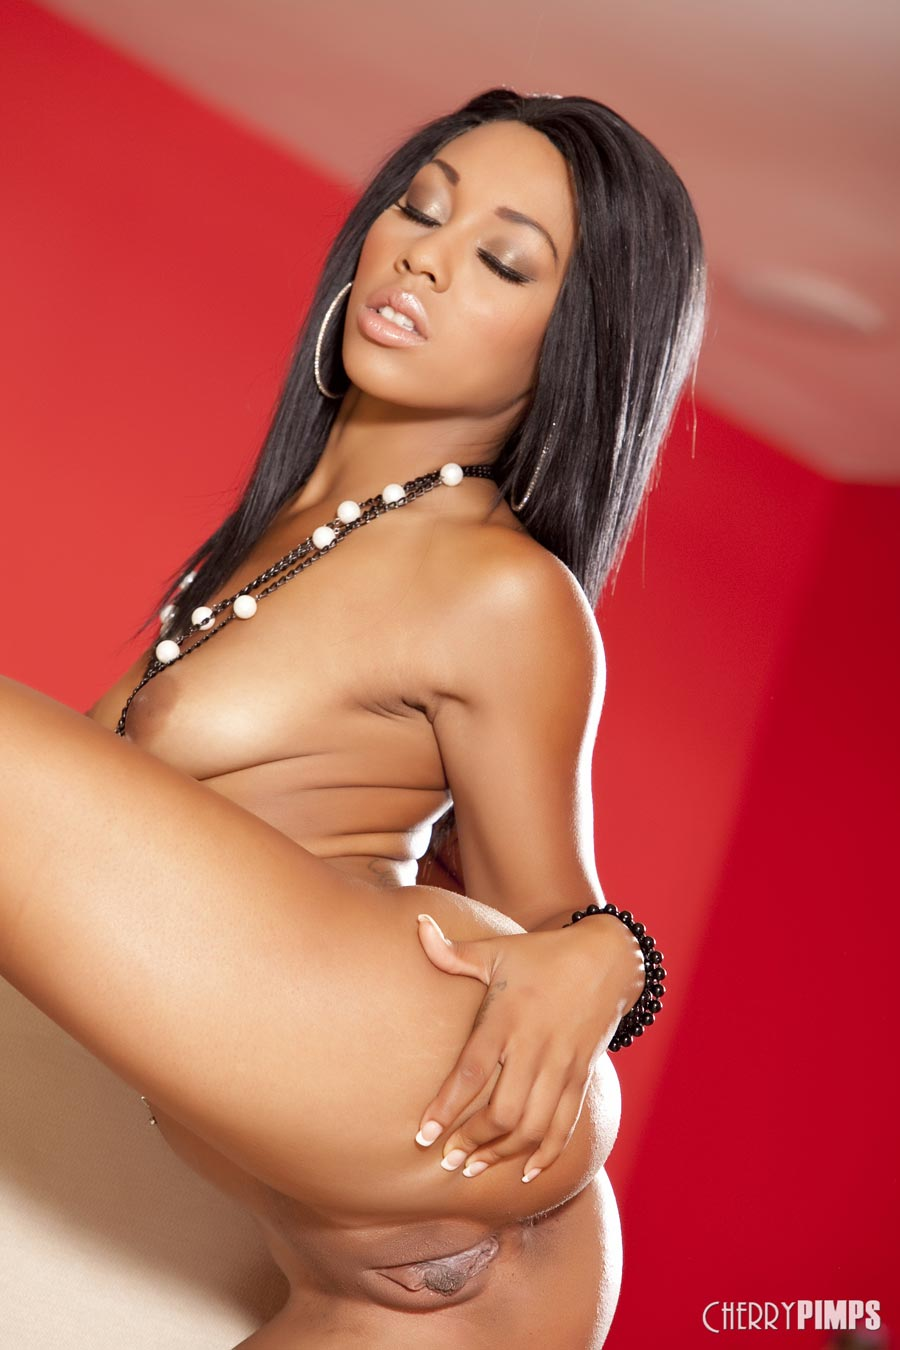 free black ebony porn gallery Ebony, Black, Latina, Indian and other galleries.